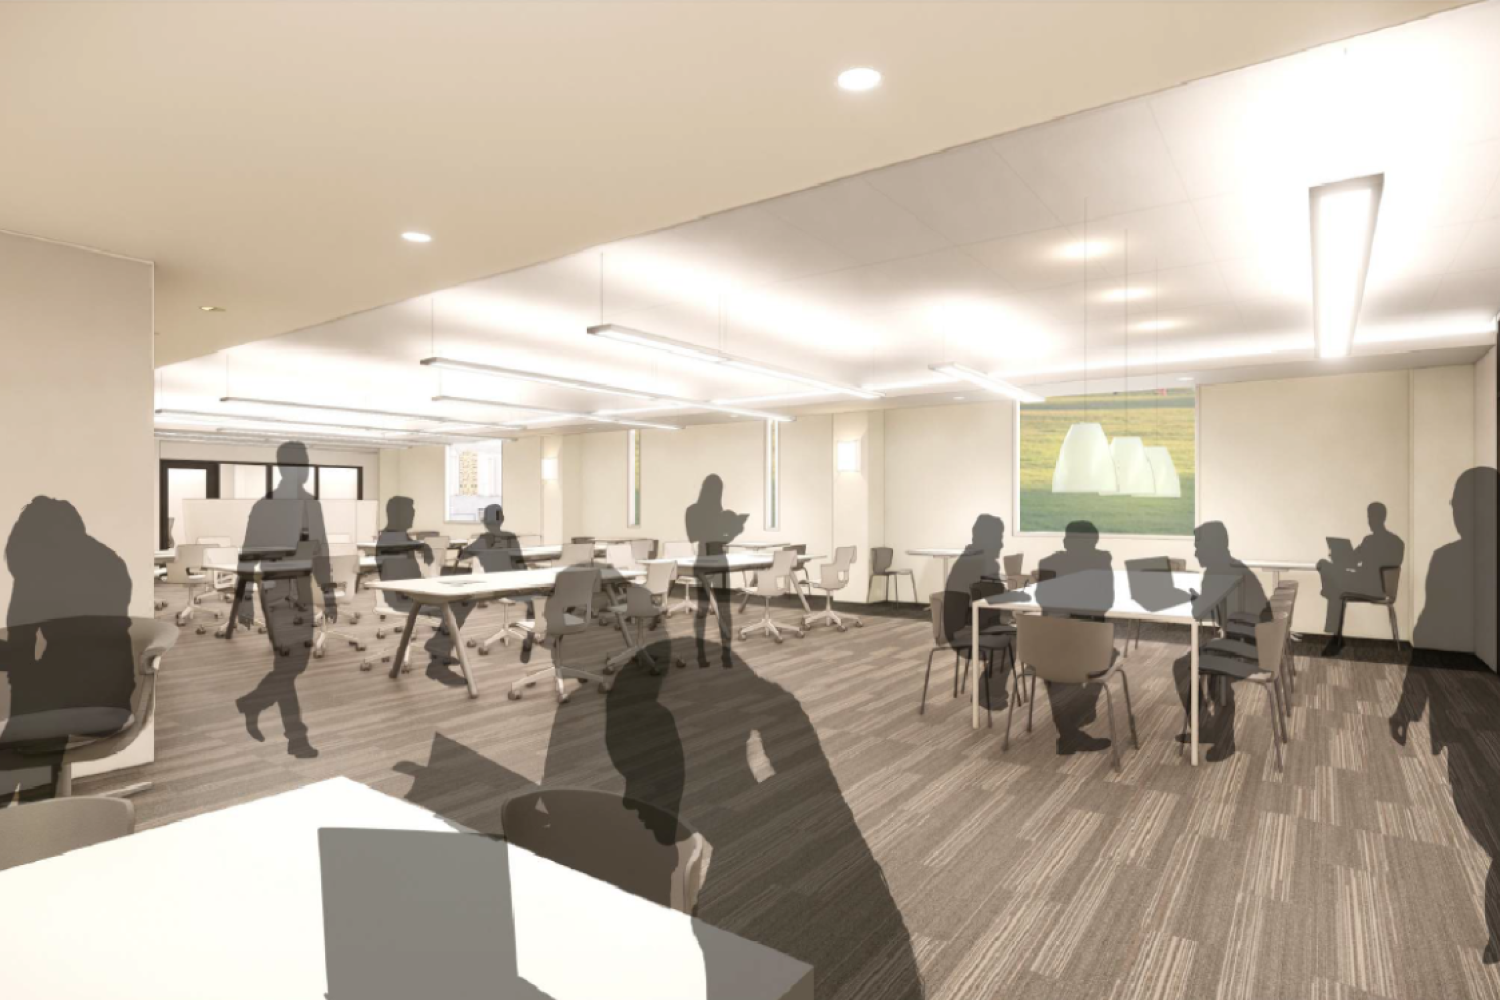 Architect Rendering of Study Area